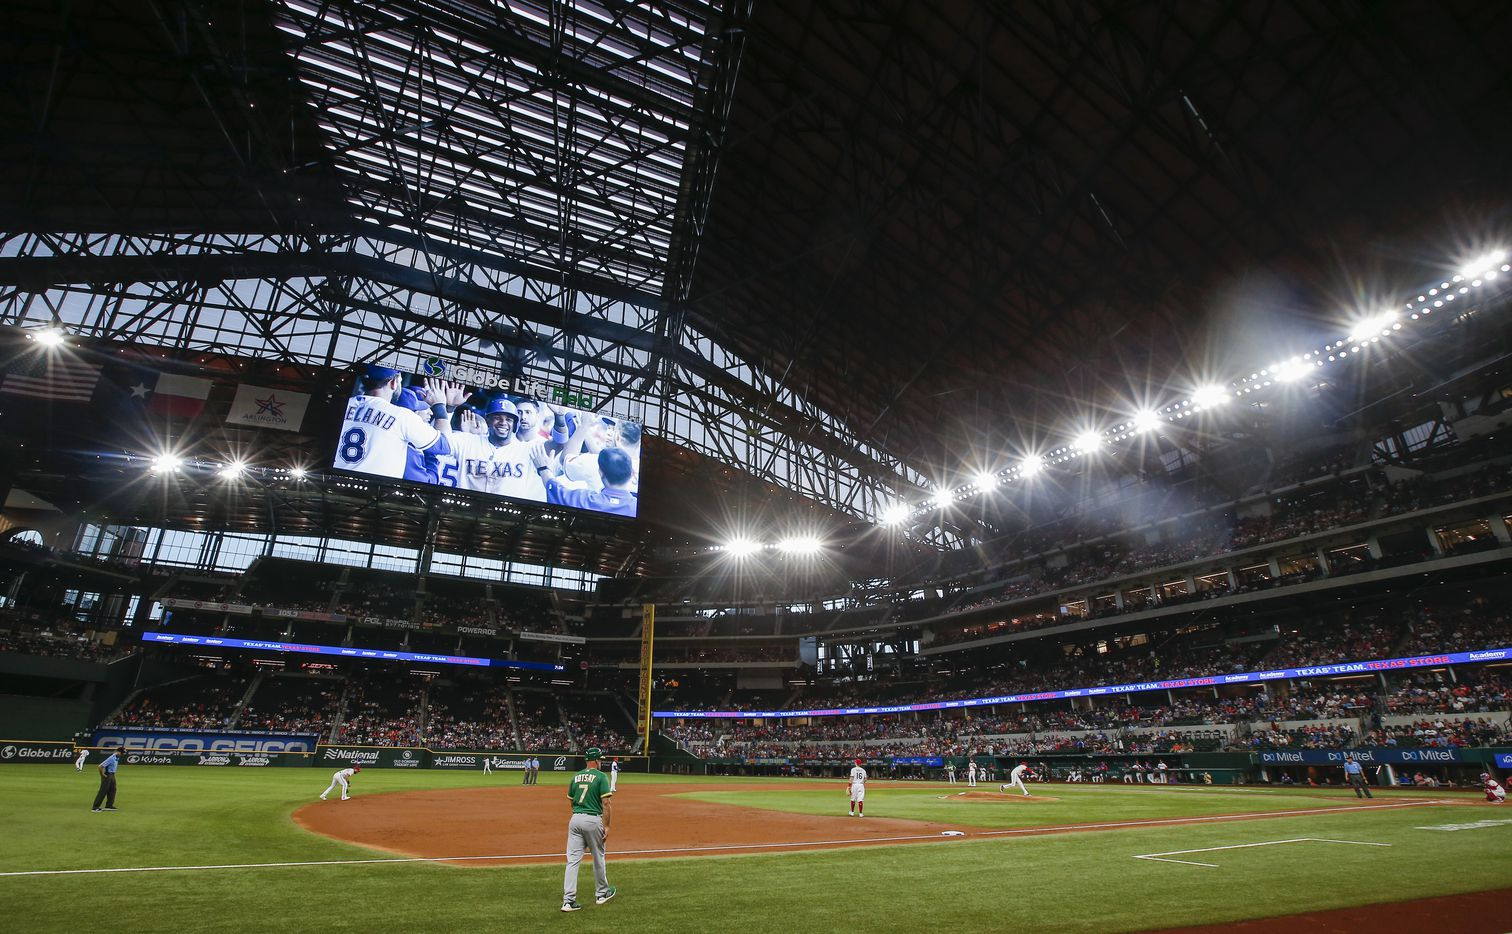 A video montage of former Texas Rangers', and now Oakland Athletics shortstop Elvis Andrus, plays on the video board during a baseball game in Arlington, Monday, June 21, 2021. (Brandon Wade/Special Contributor)